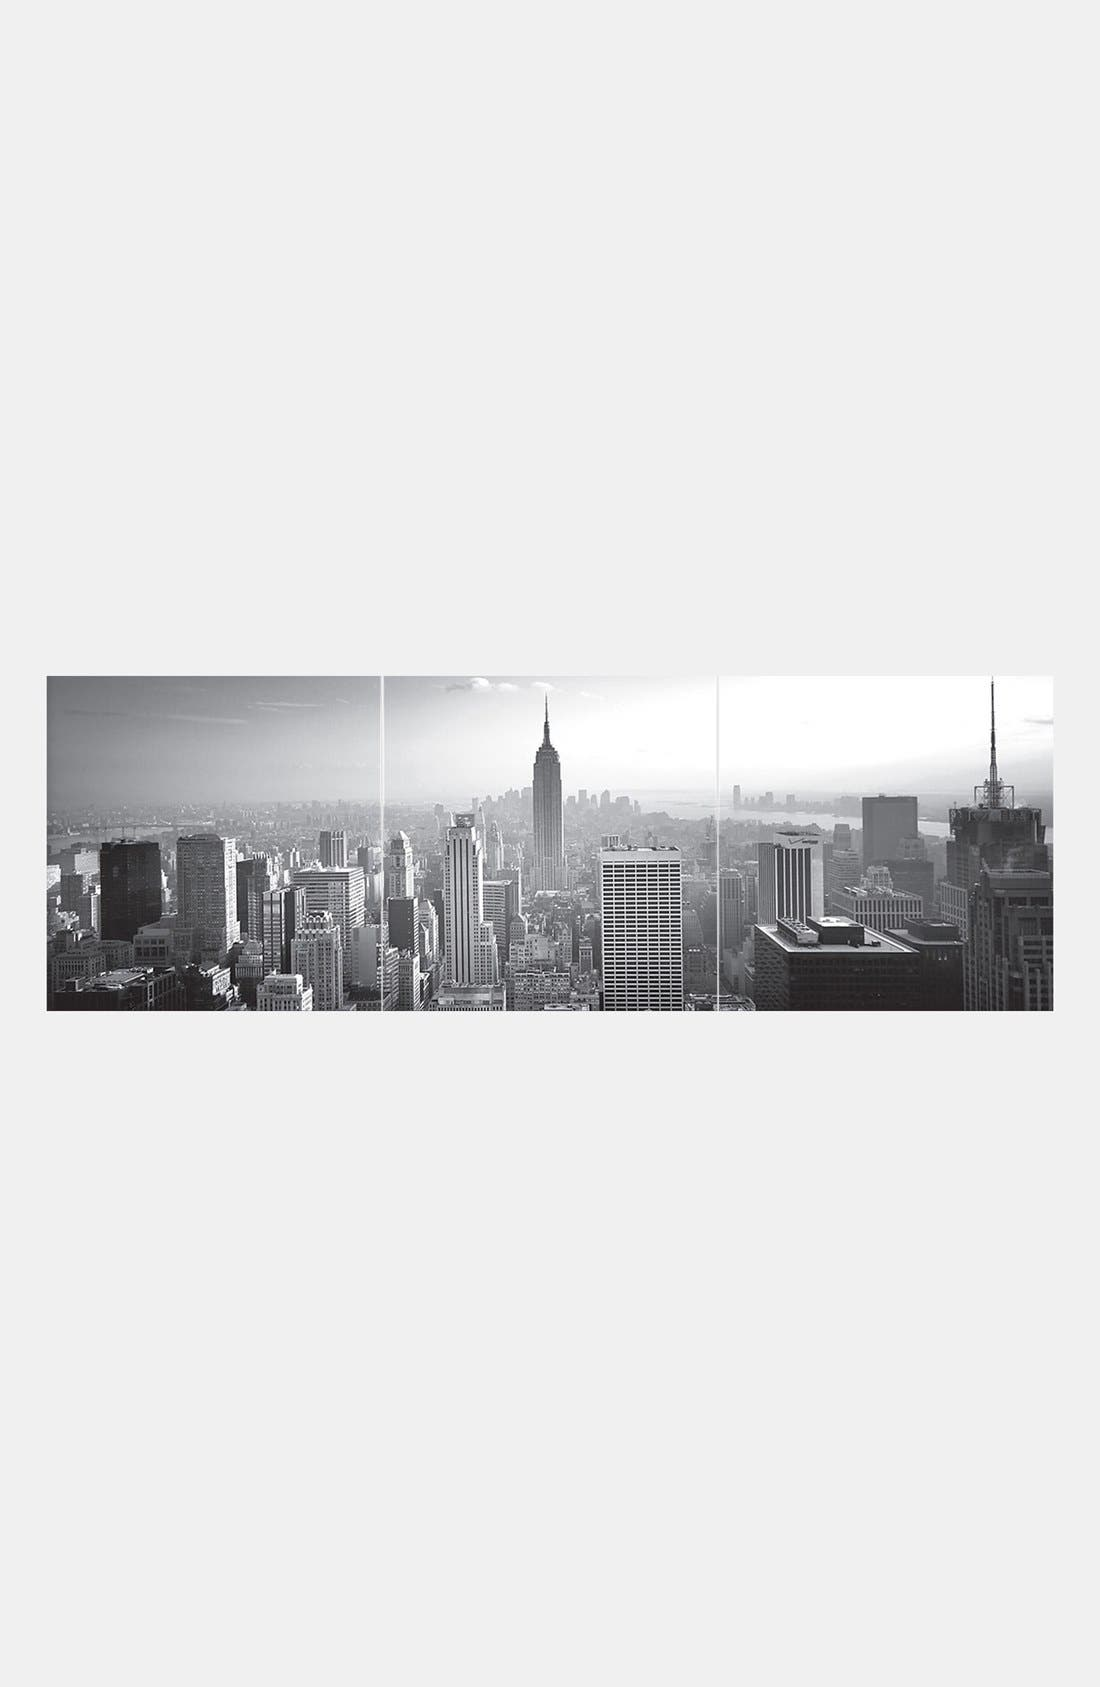 Alternate Image 1 Selected - Wallpops New York Print Wall Art